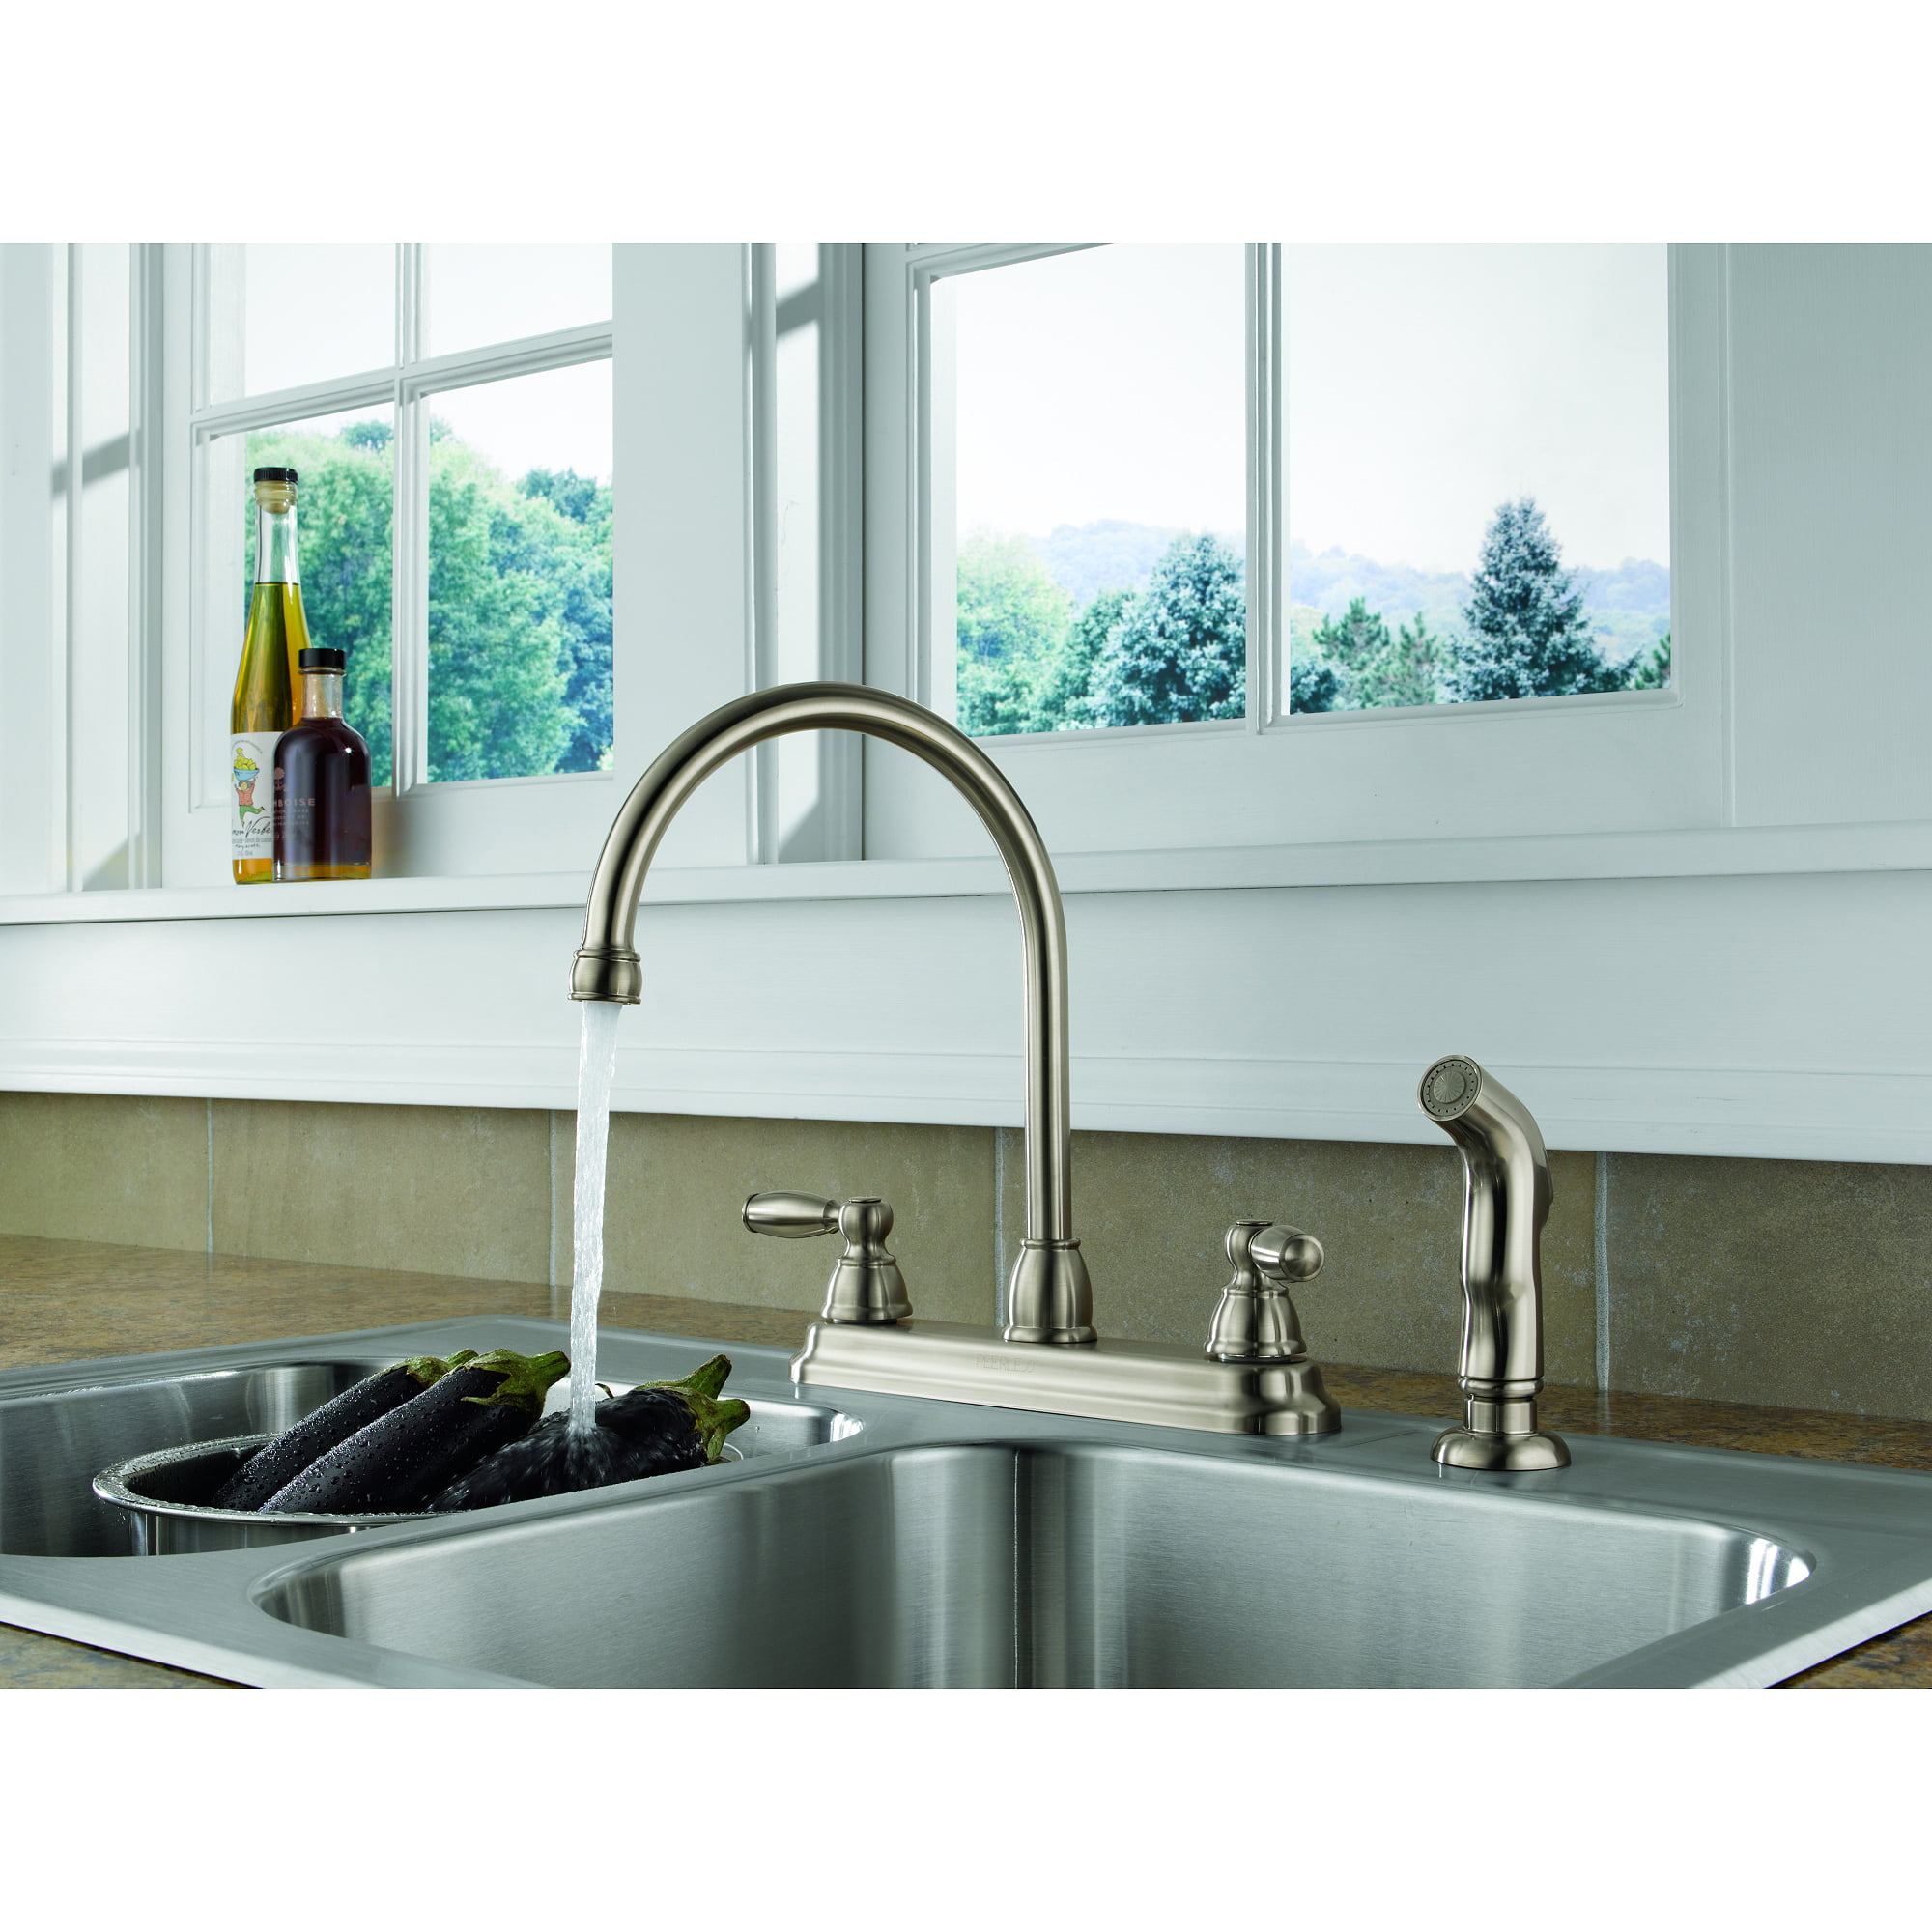 Peerless 2-Handle Lavatory Faucet with Side spray, Stainless Steel ...